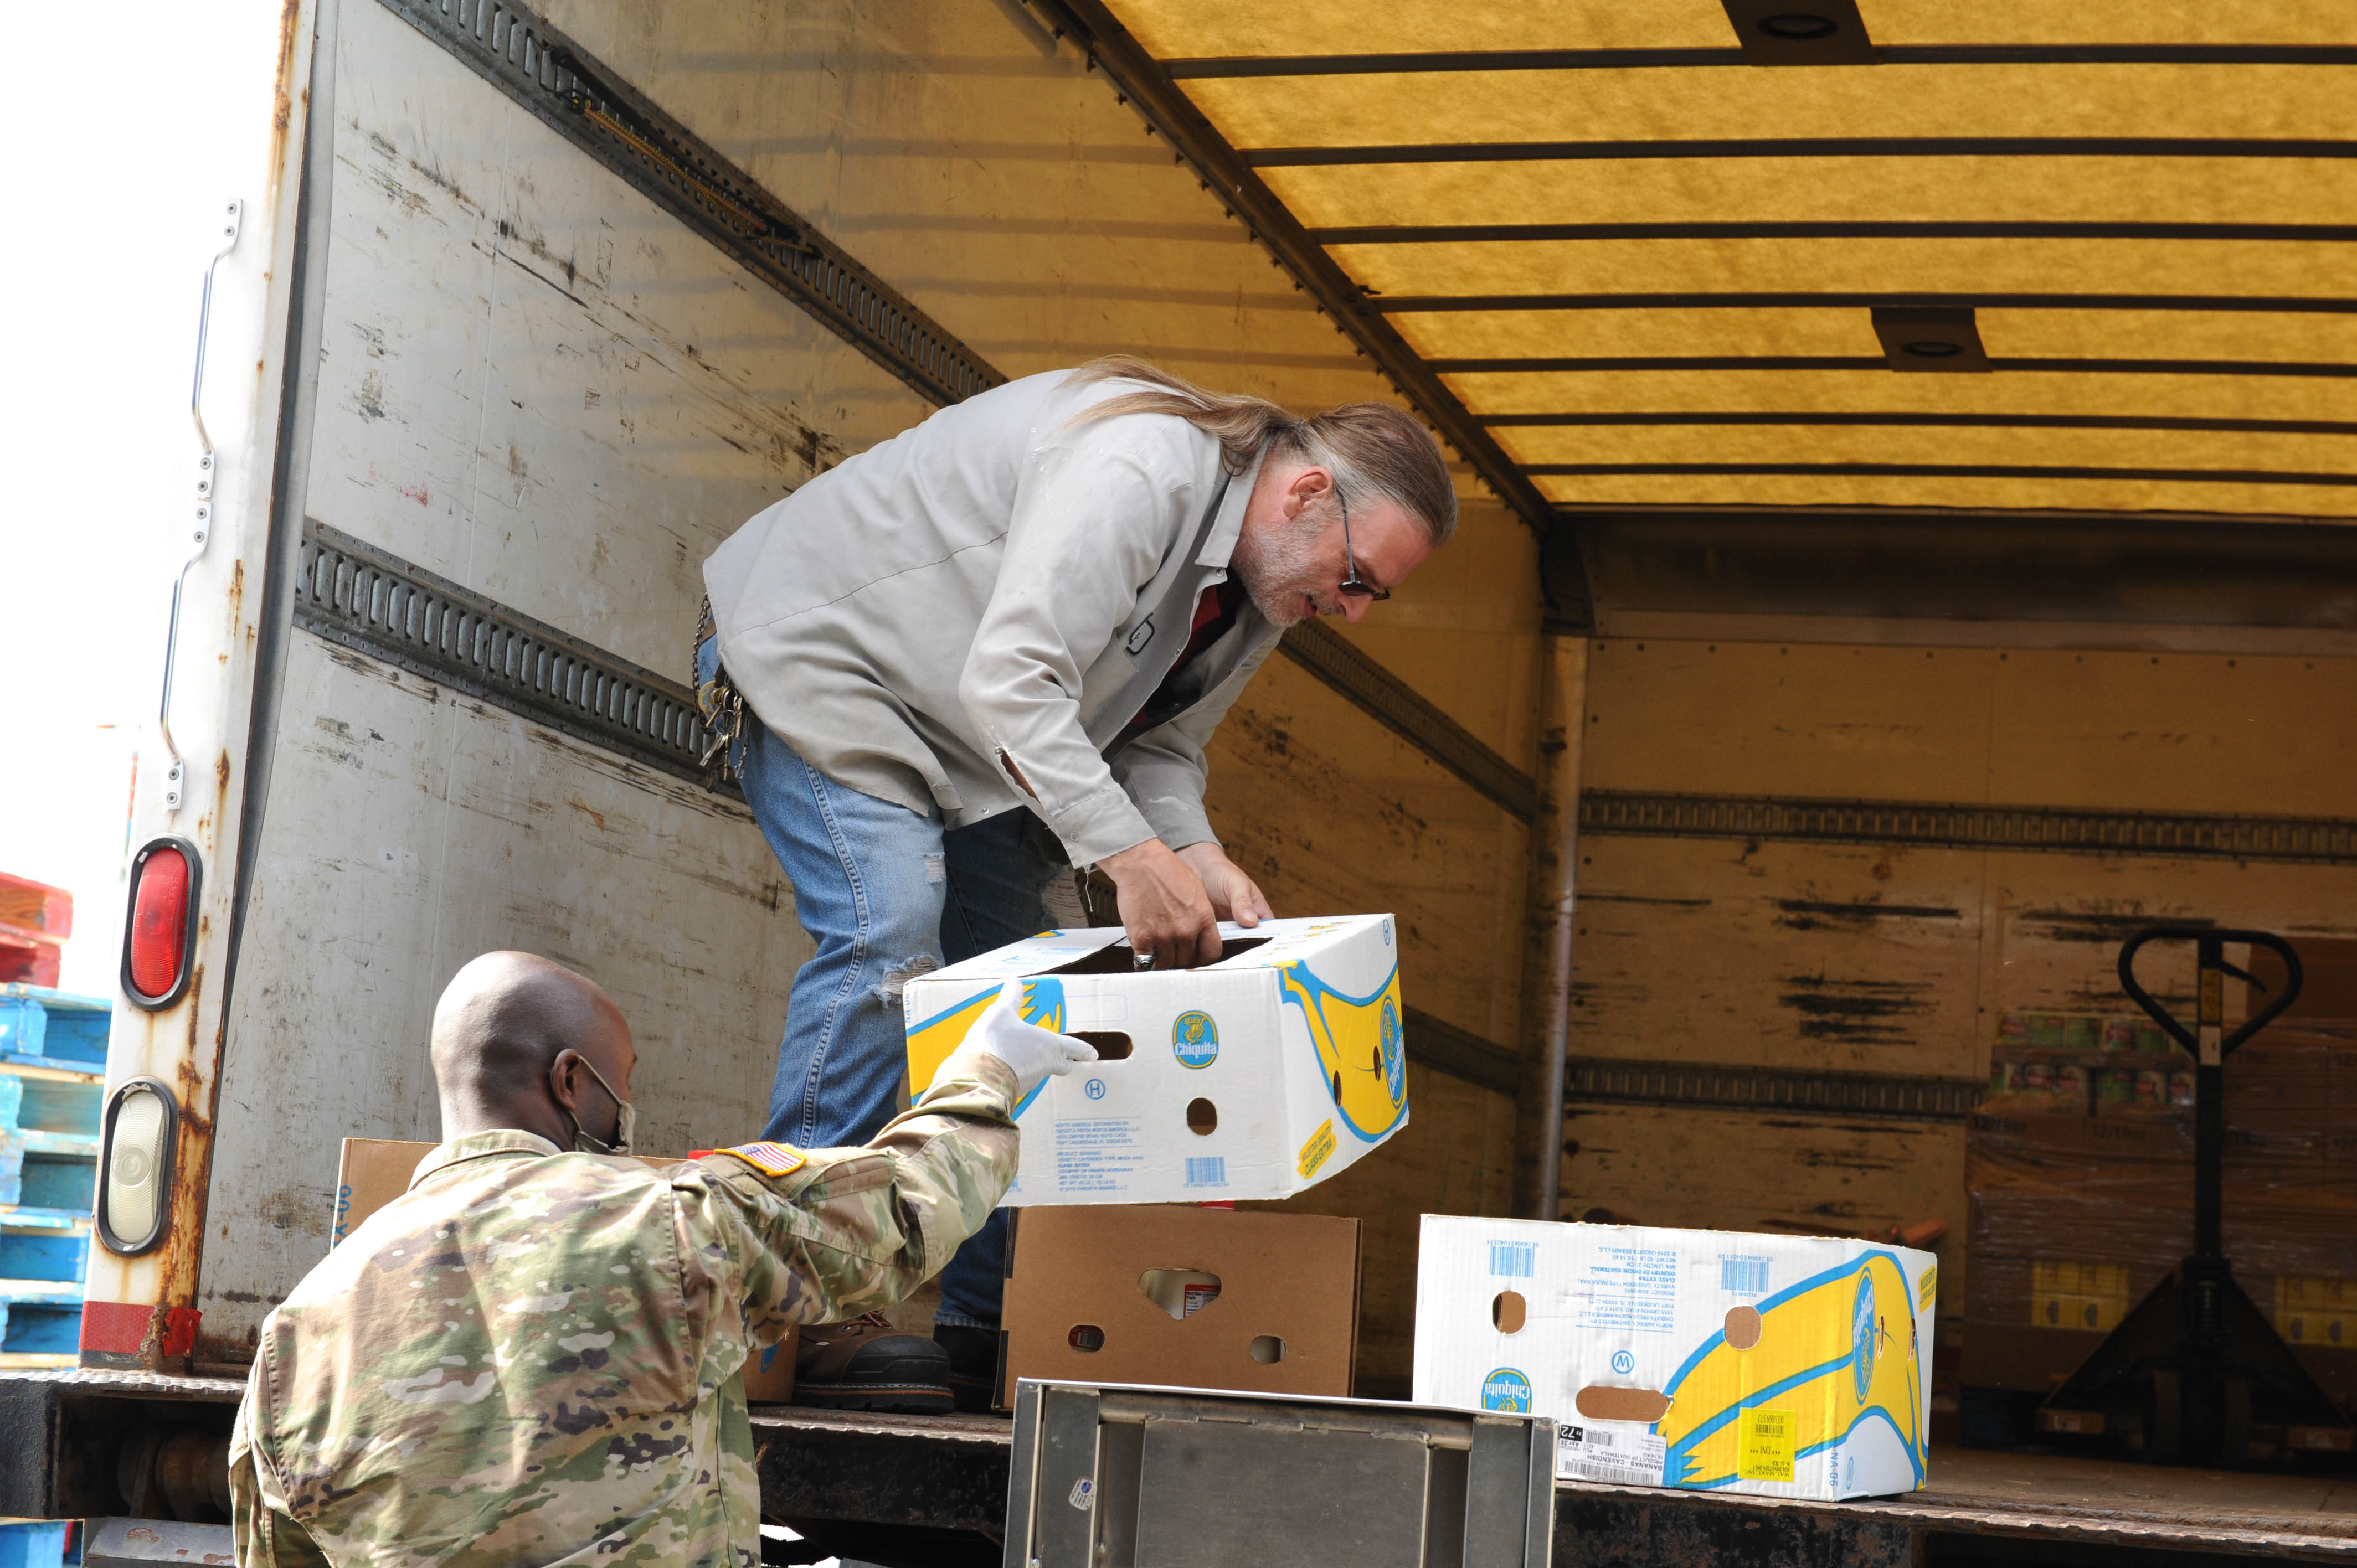 Soldier hands box of bananas to civilian helper in back of truck